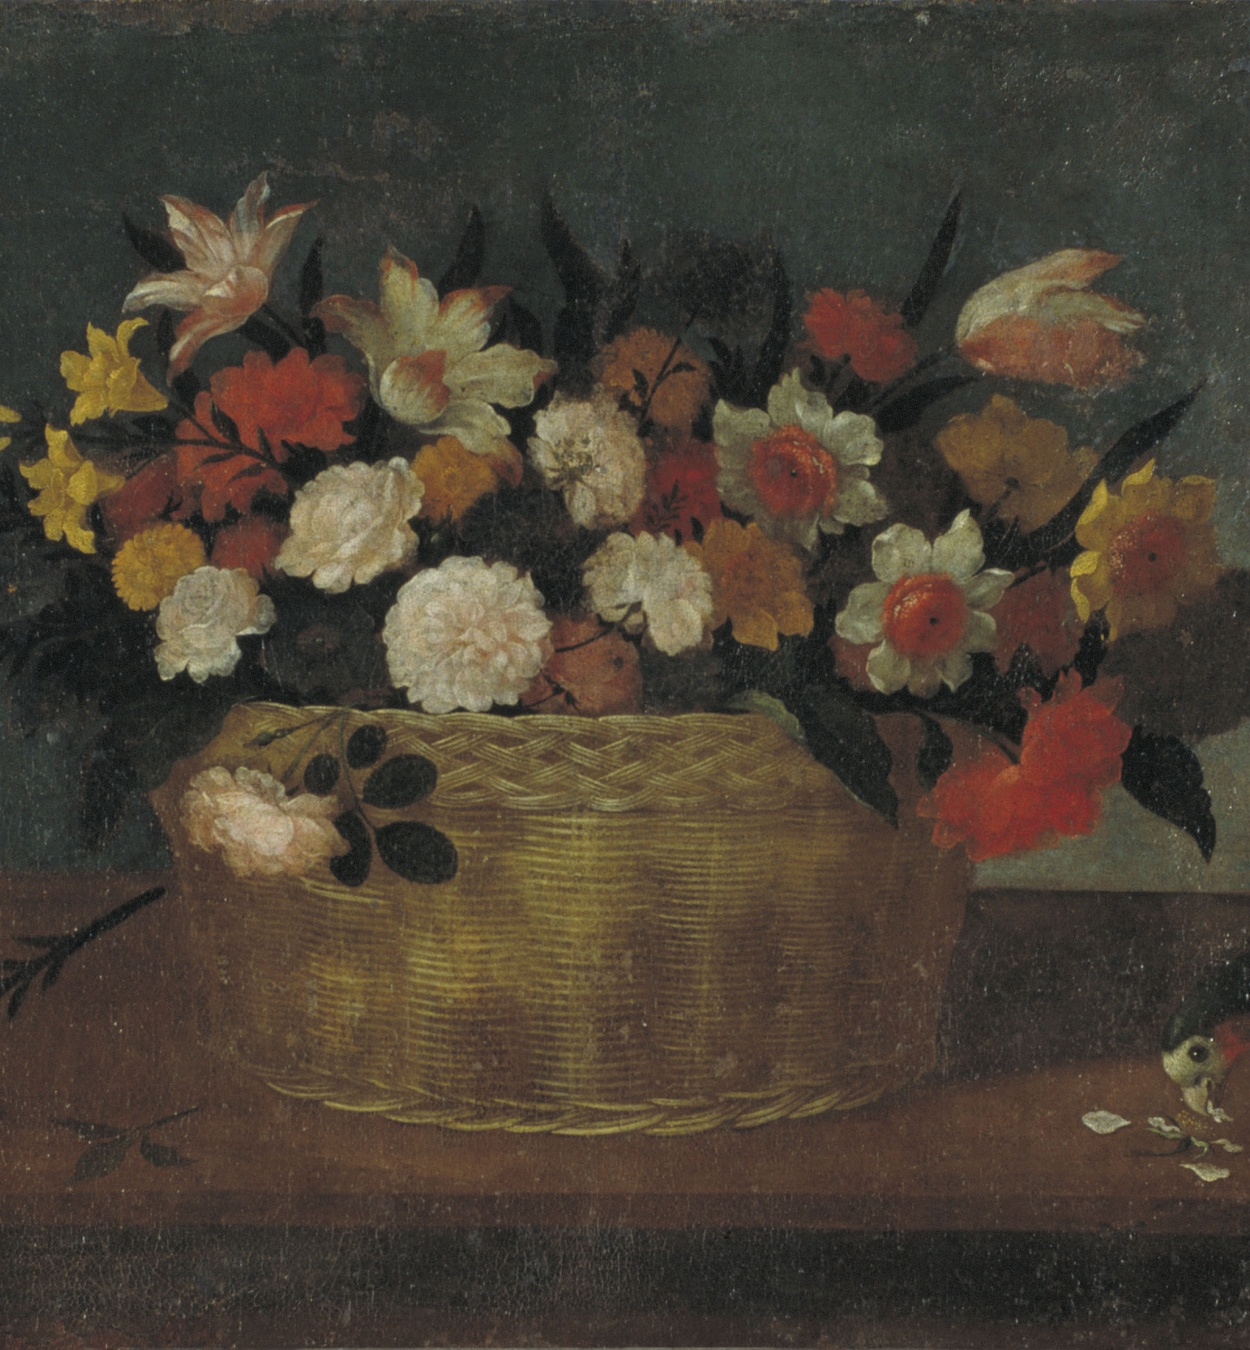 Pedro de Camprobín - Still Life with Flowers in a Basket and Exotic Bird - Circa 1640